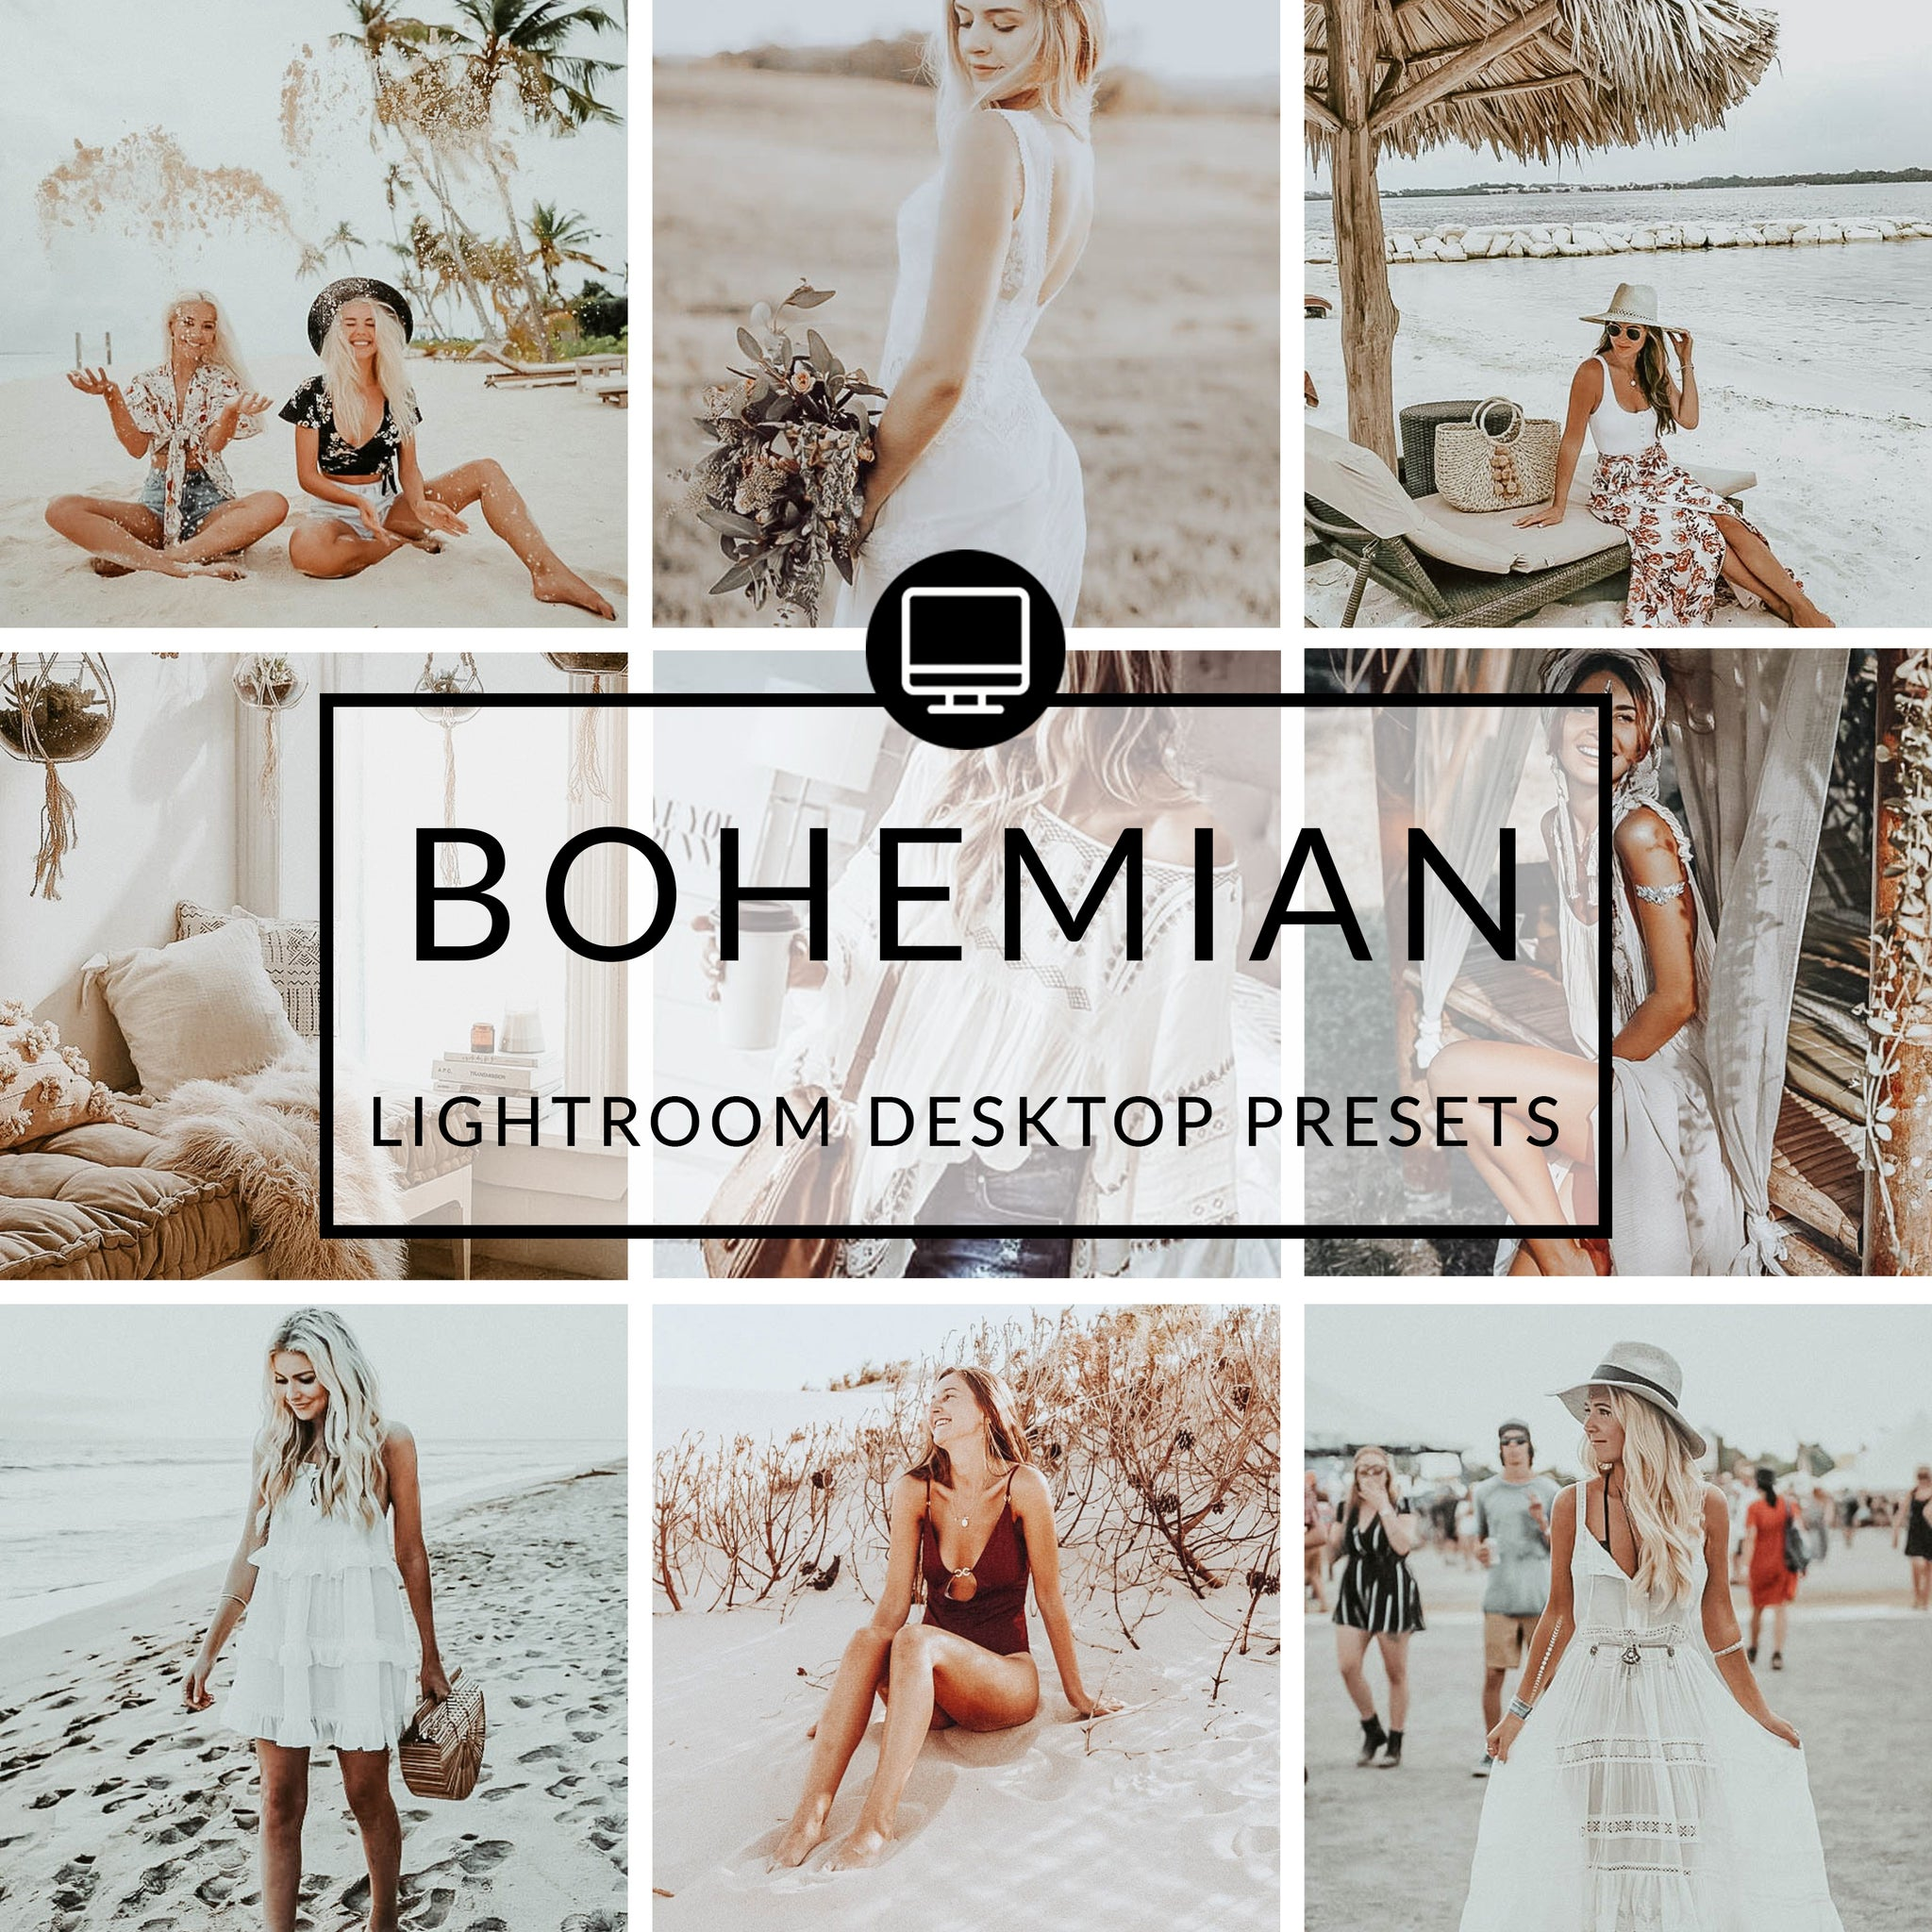 Bohemian Lightroom Desktop Presets